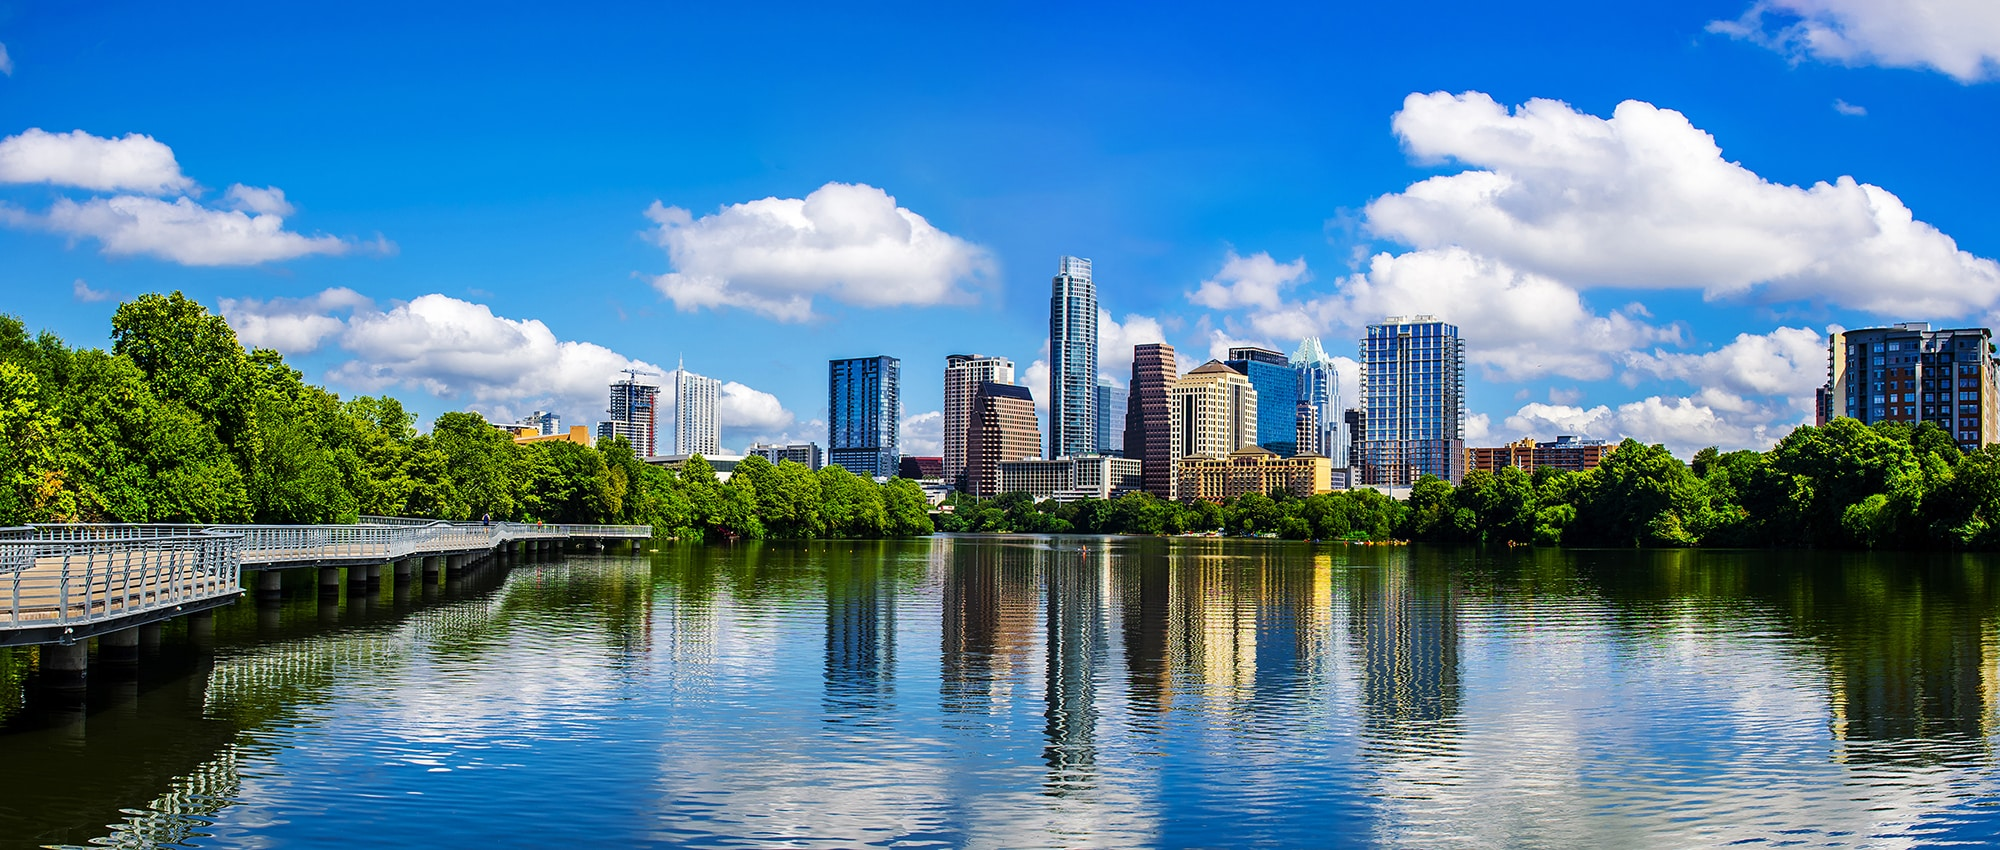 Austin Skyline | AQUILA Commercial - Local Austin Commercial Real Estate Firm